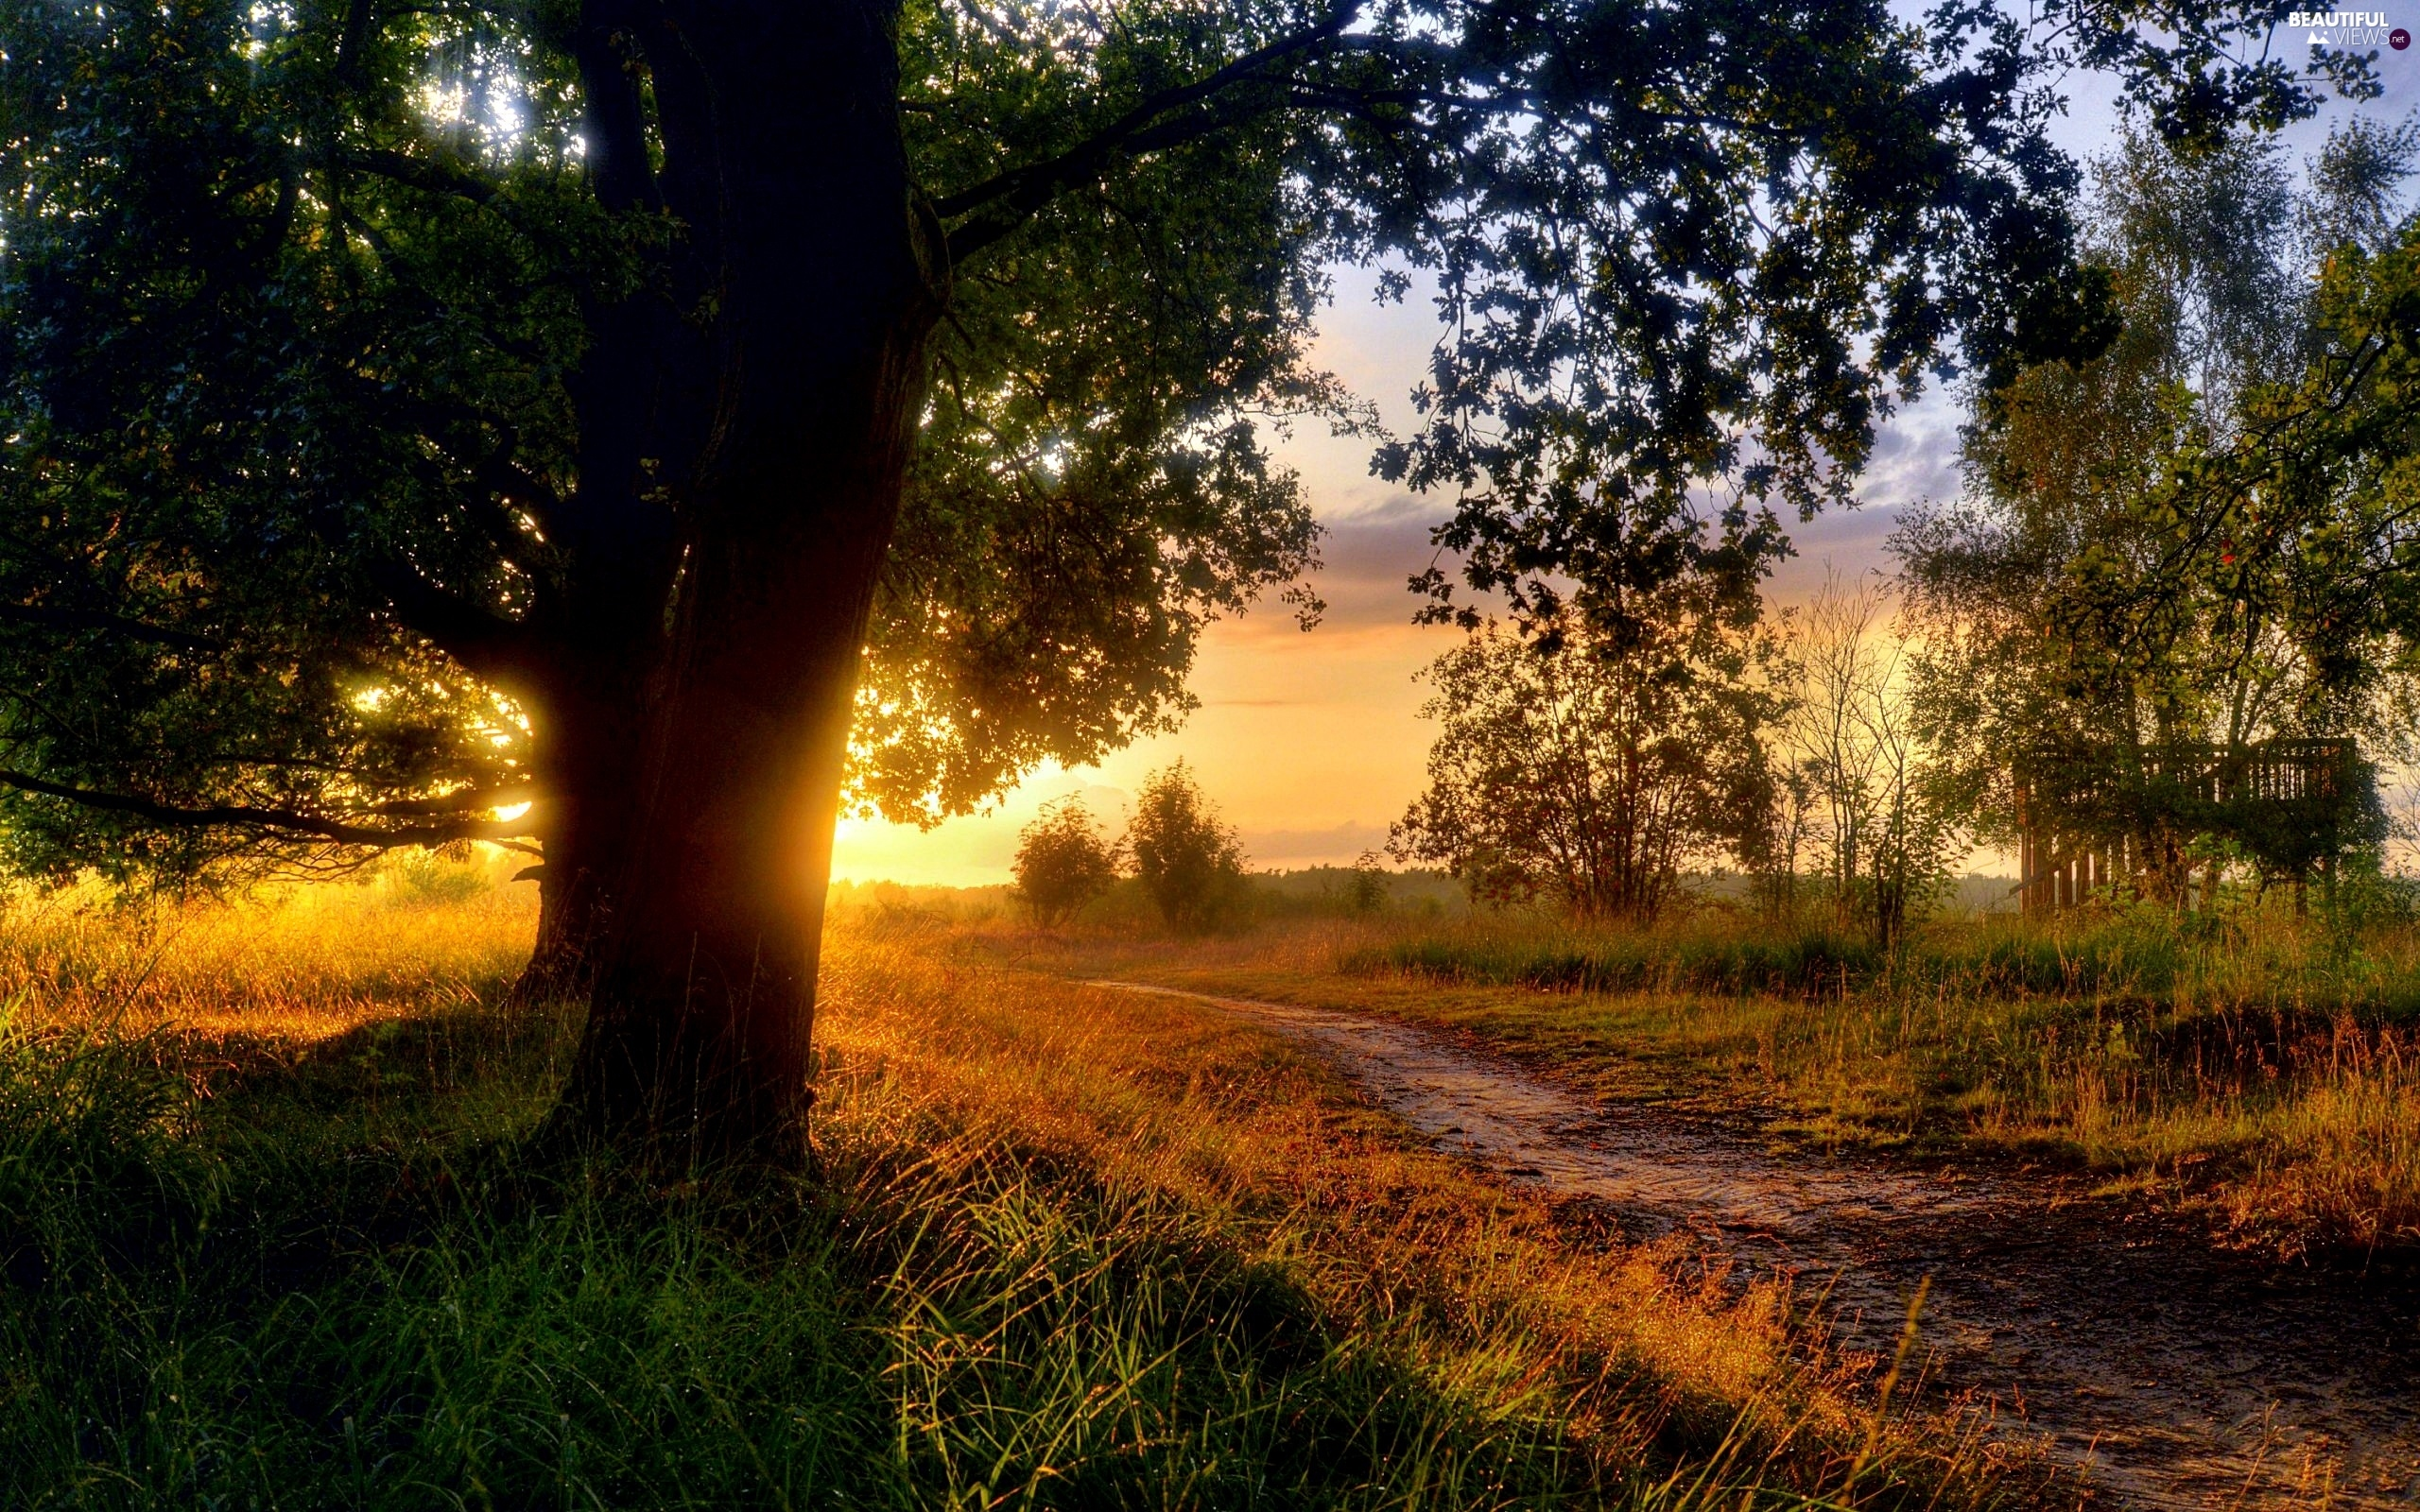 morning, Sunrise, Way, trees, Field